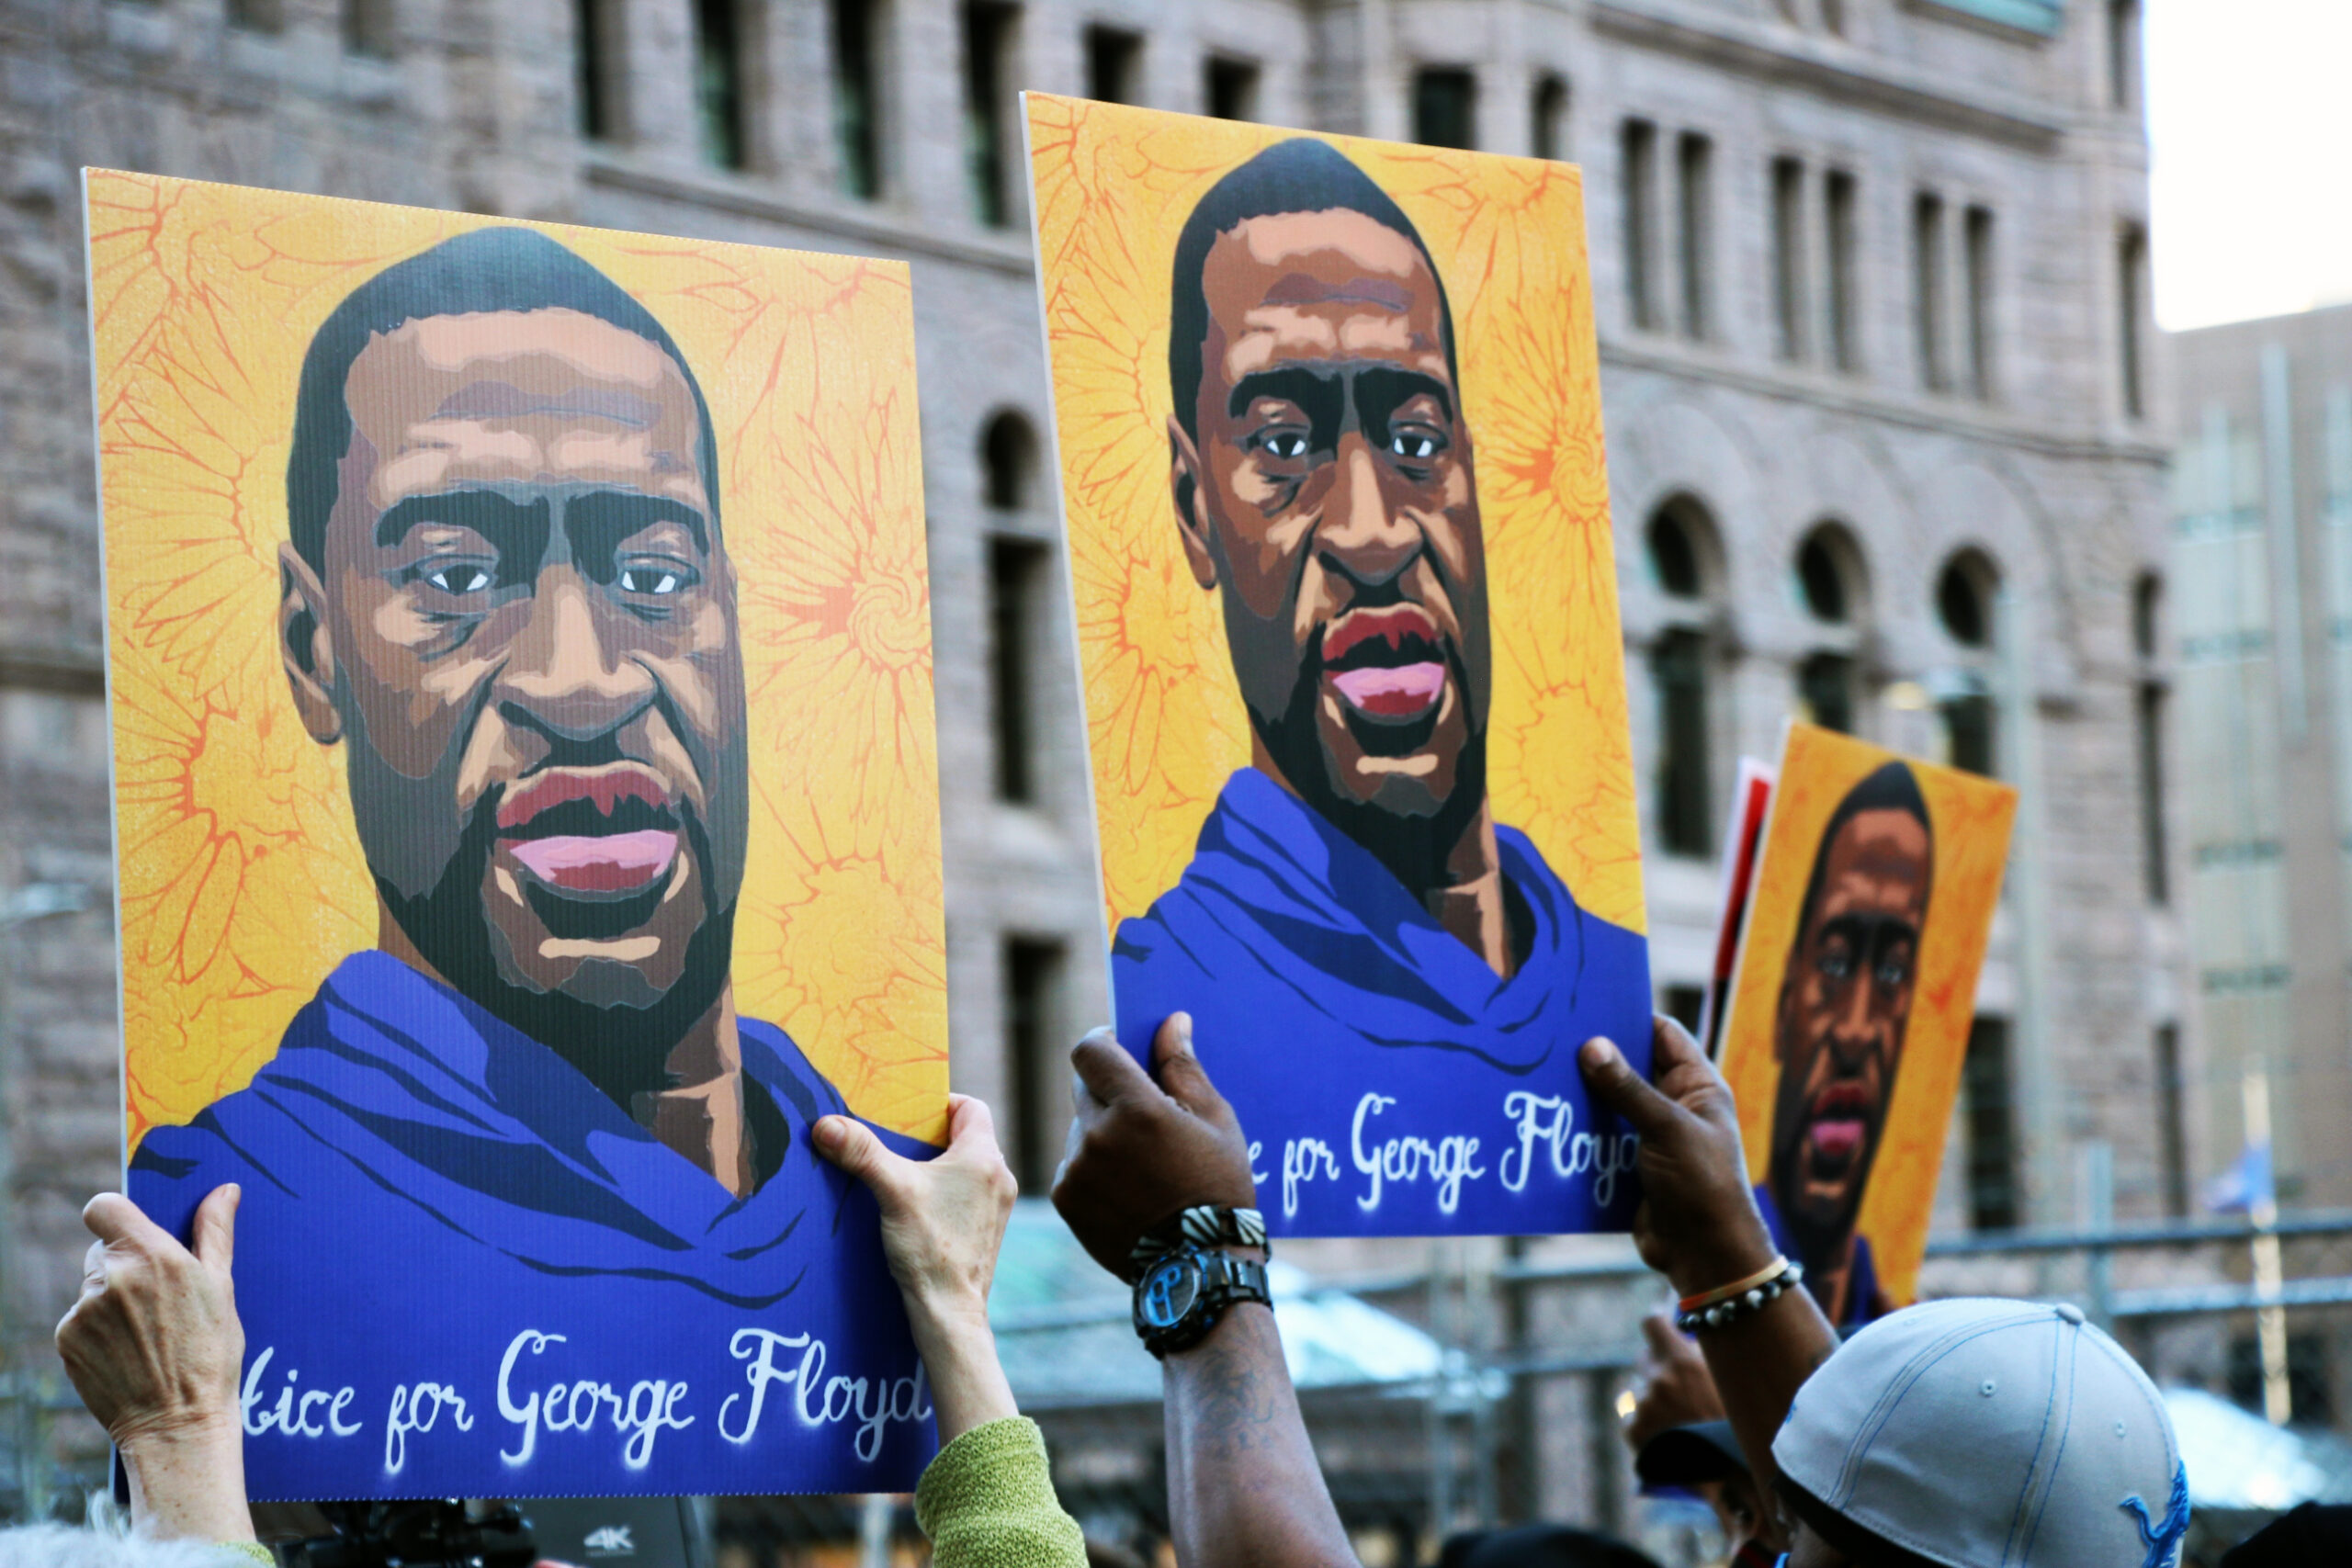 three yellow signs are held up that have George Floyd's face on them